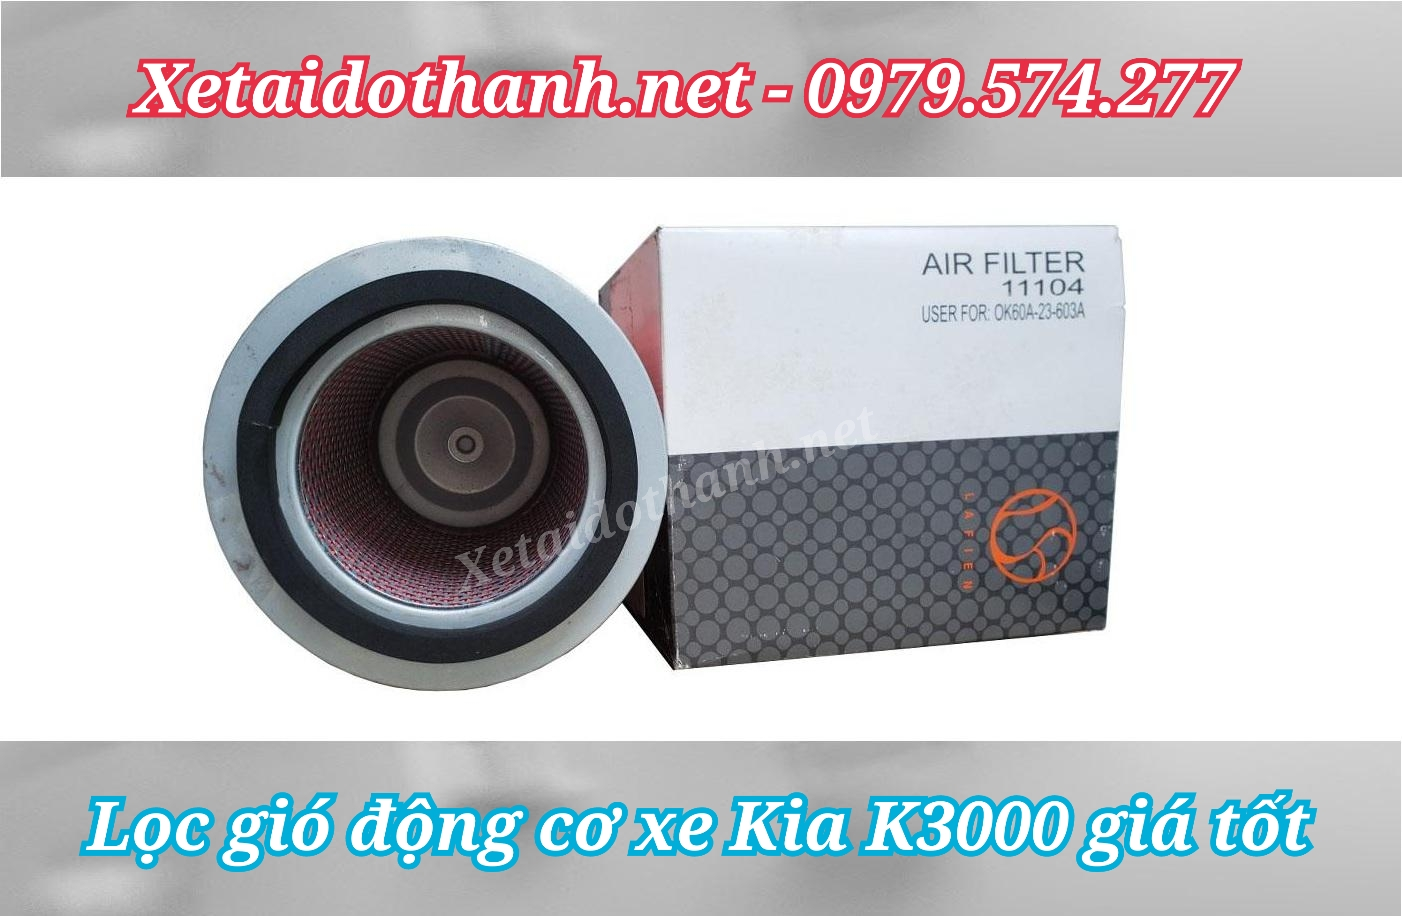 LOC GIO DONG CO K3000